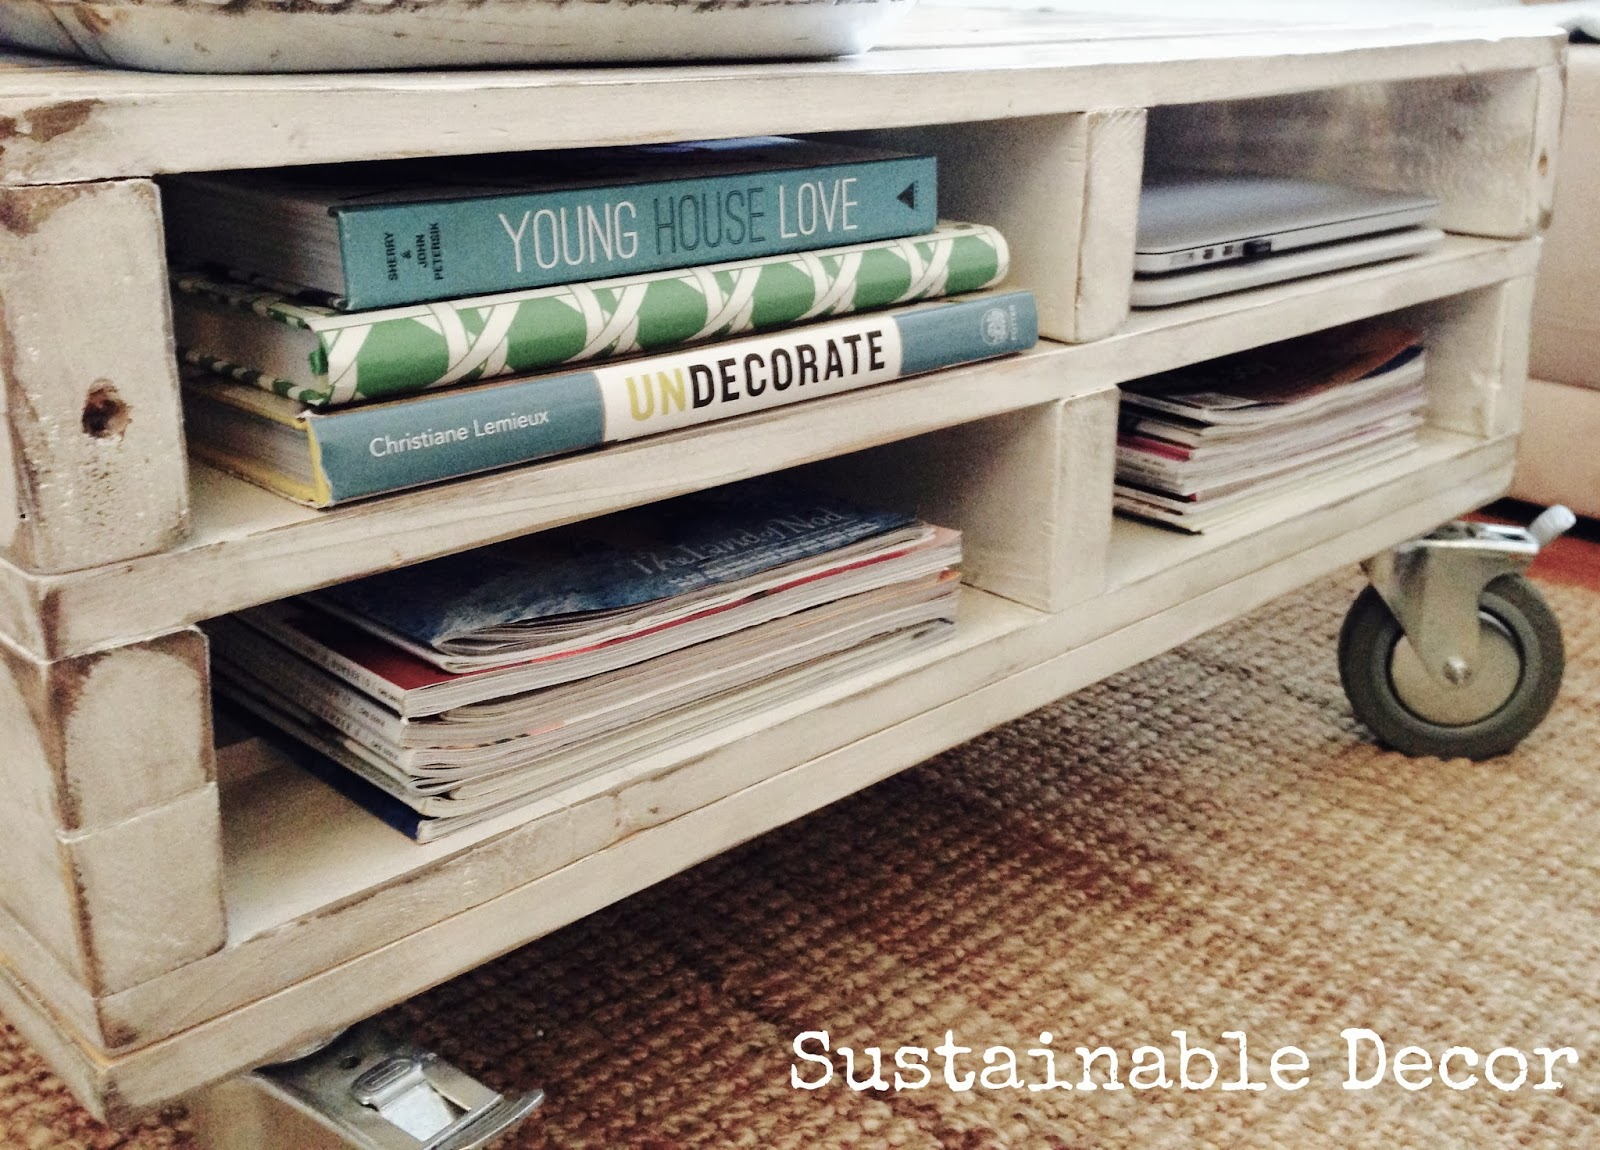 Sustainable Decor